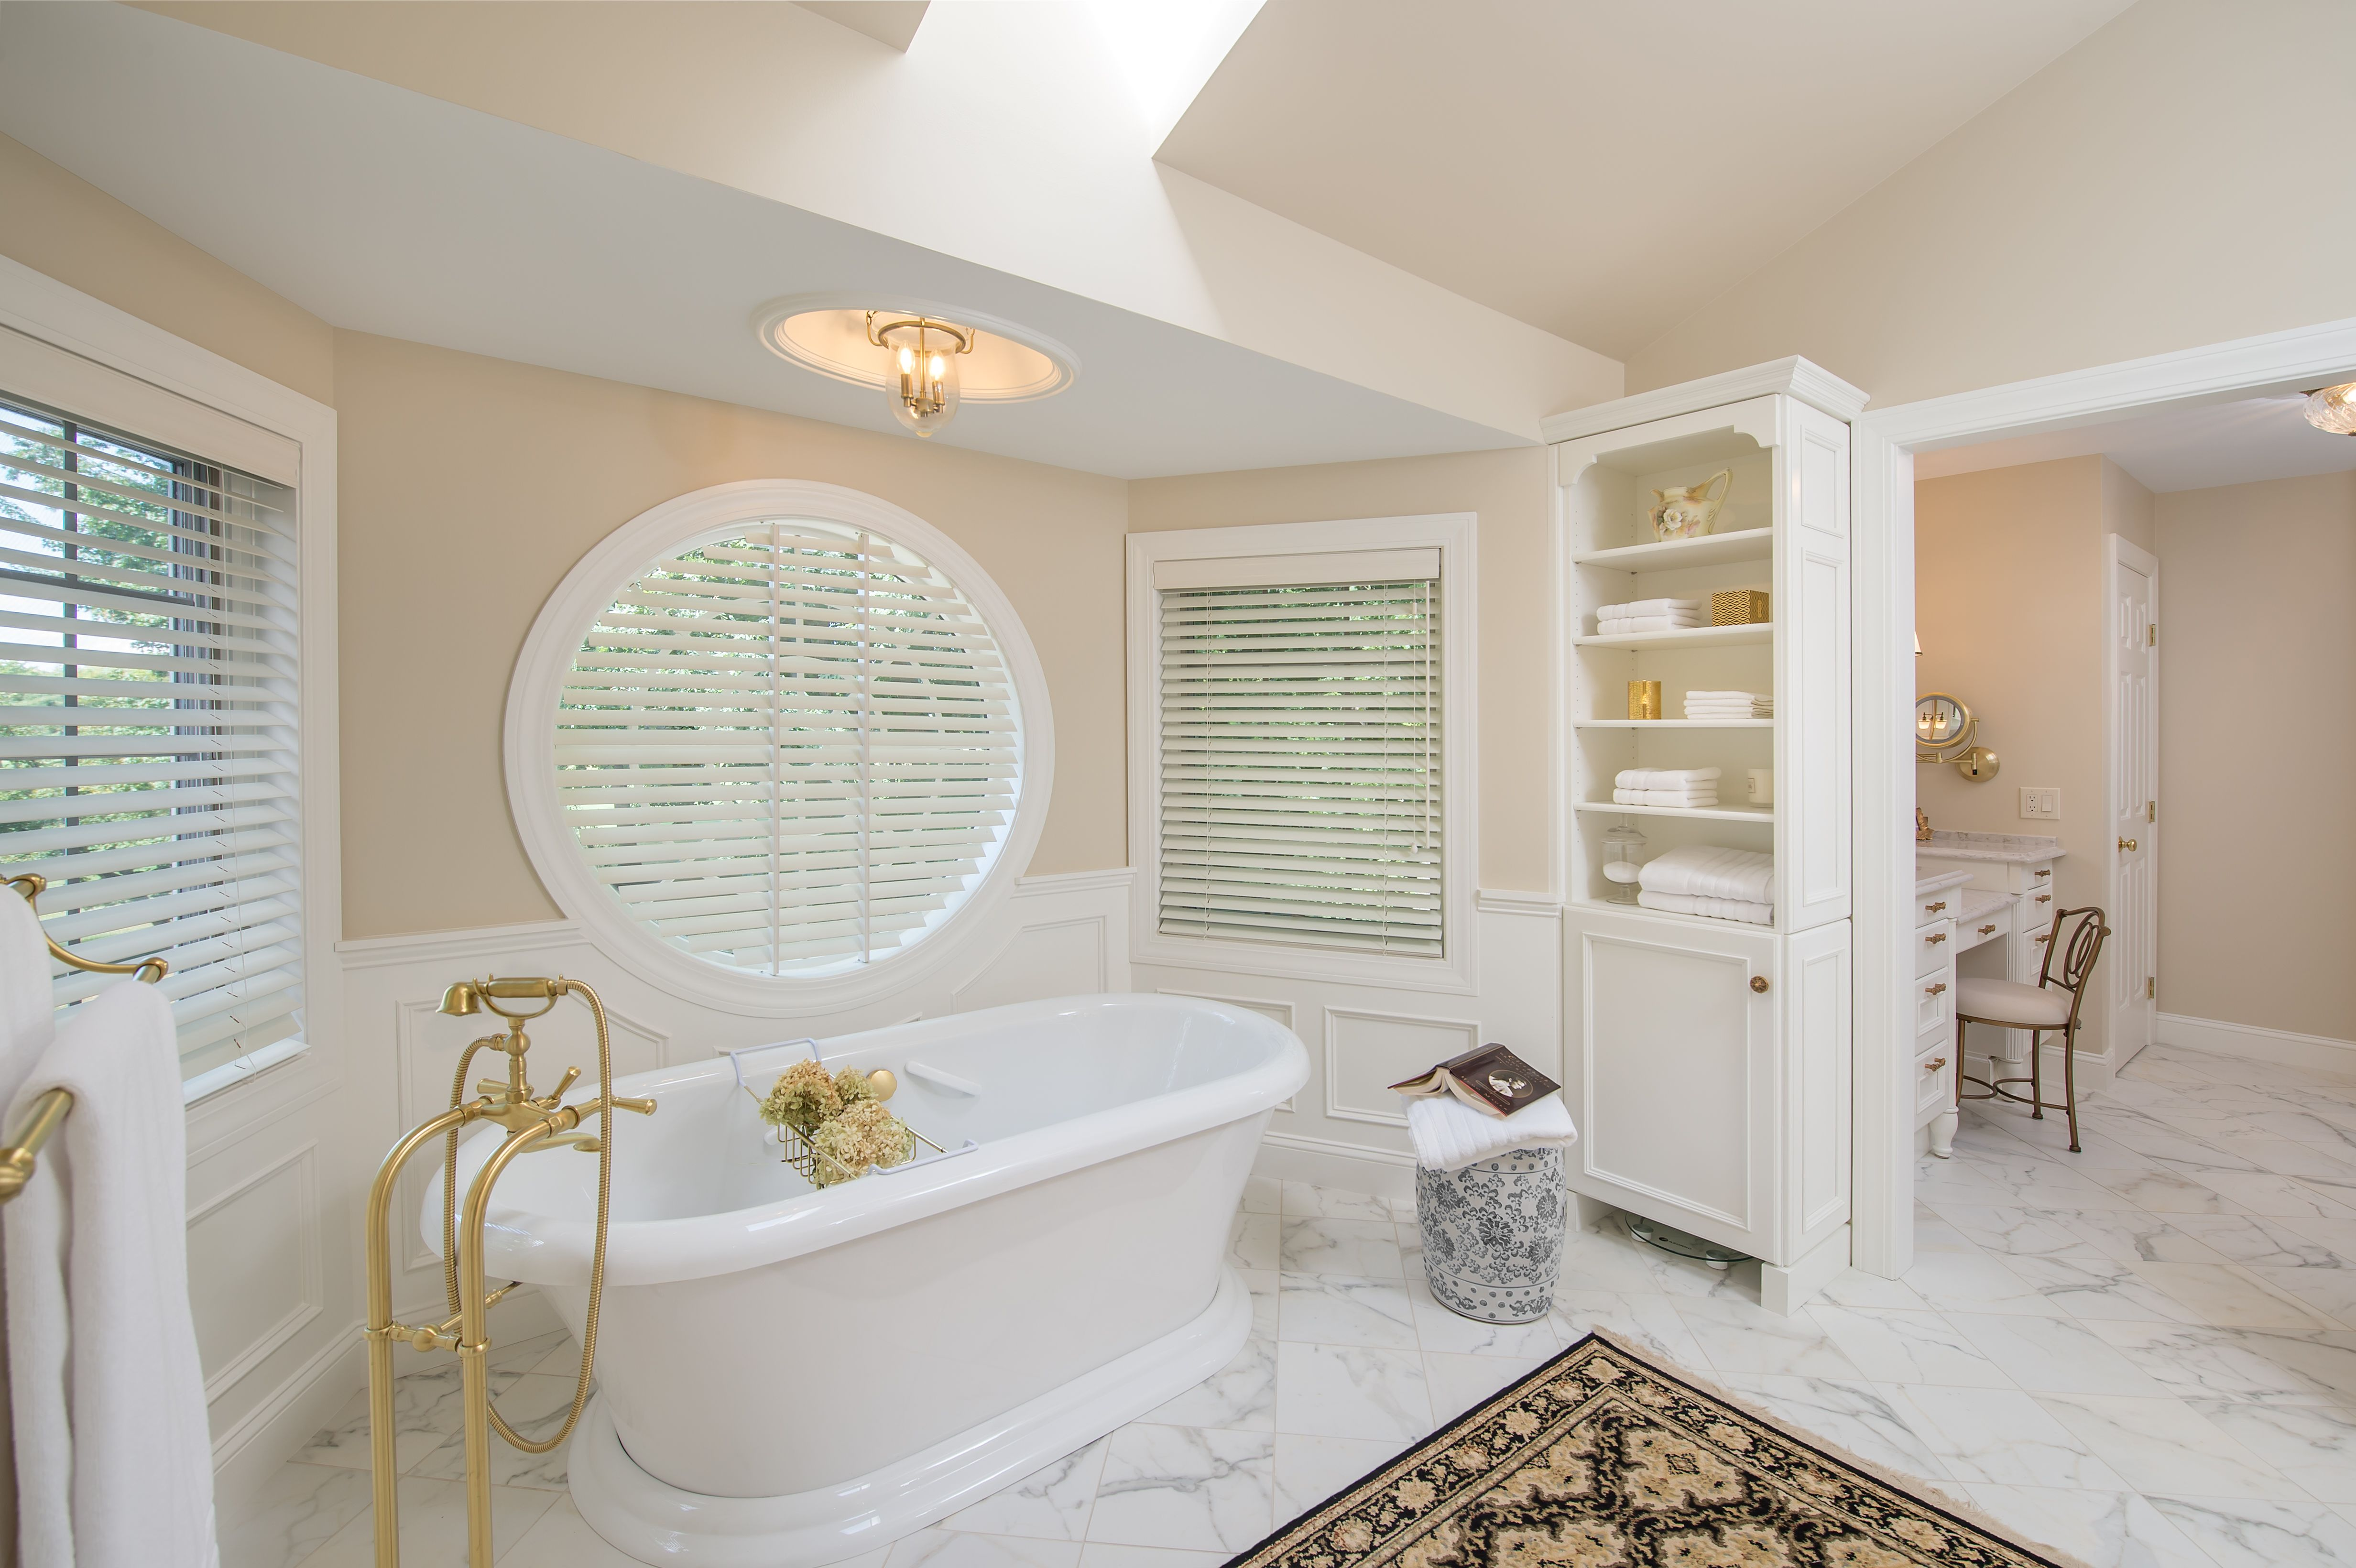 Luxury bathroom design makeover in Loudonville, NY by award winning ...